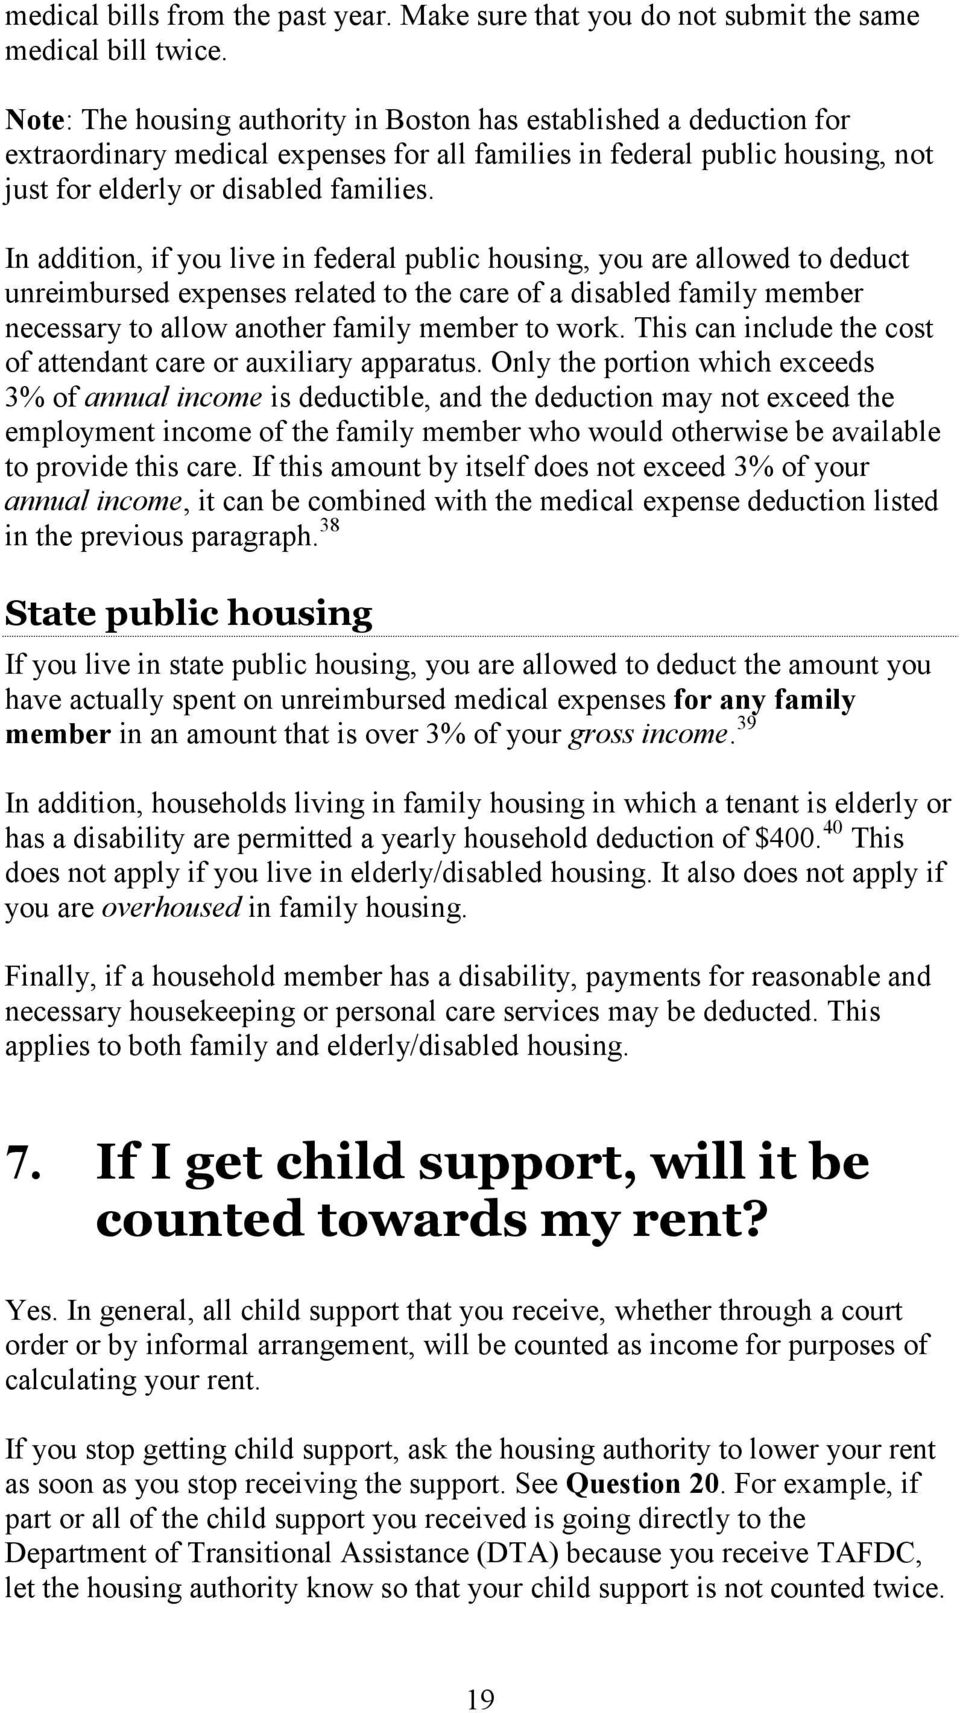 In addition, if you live in federal public housing, you are allowed to deduct unreimbursed expenses related to the care of a disabled family member necessary to allow another family member to work.